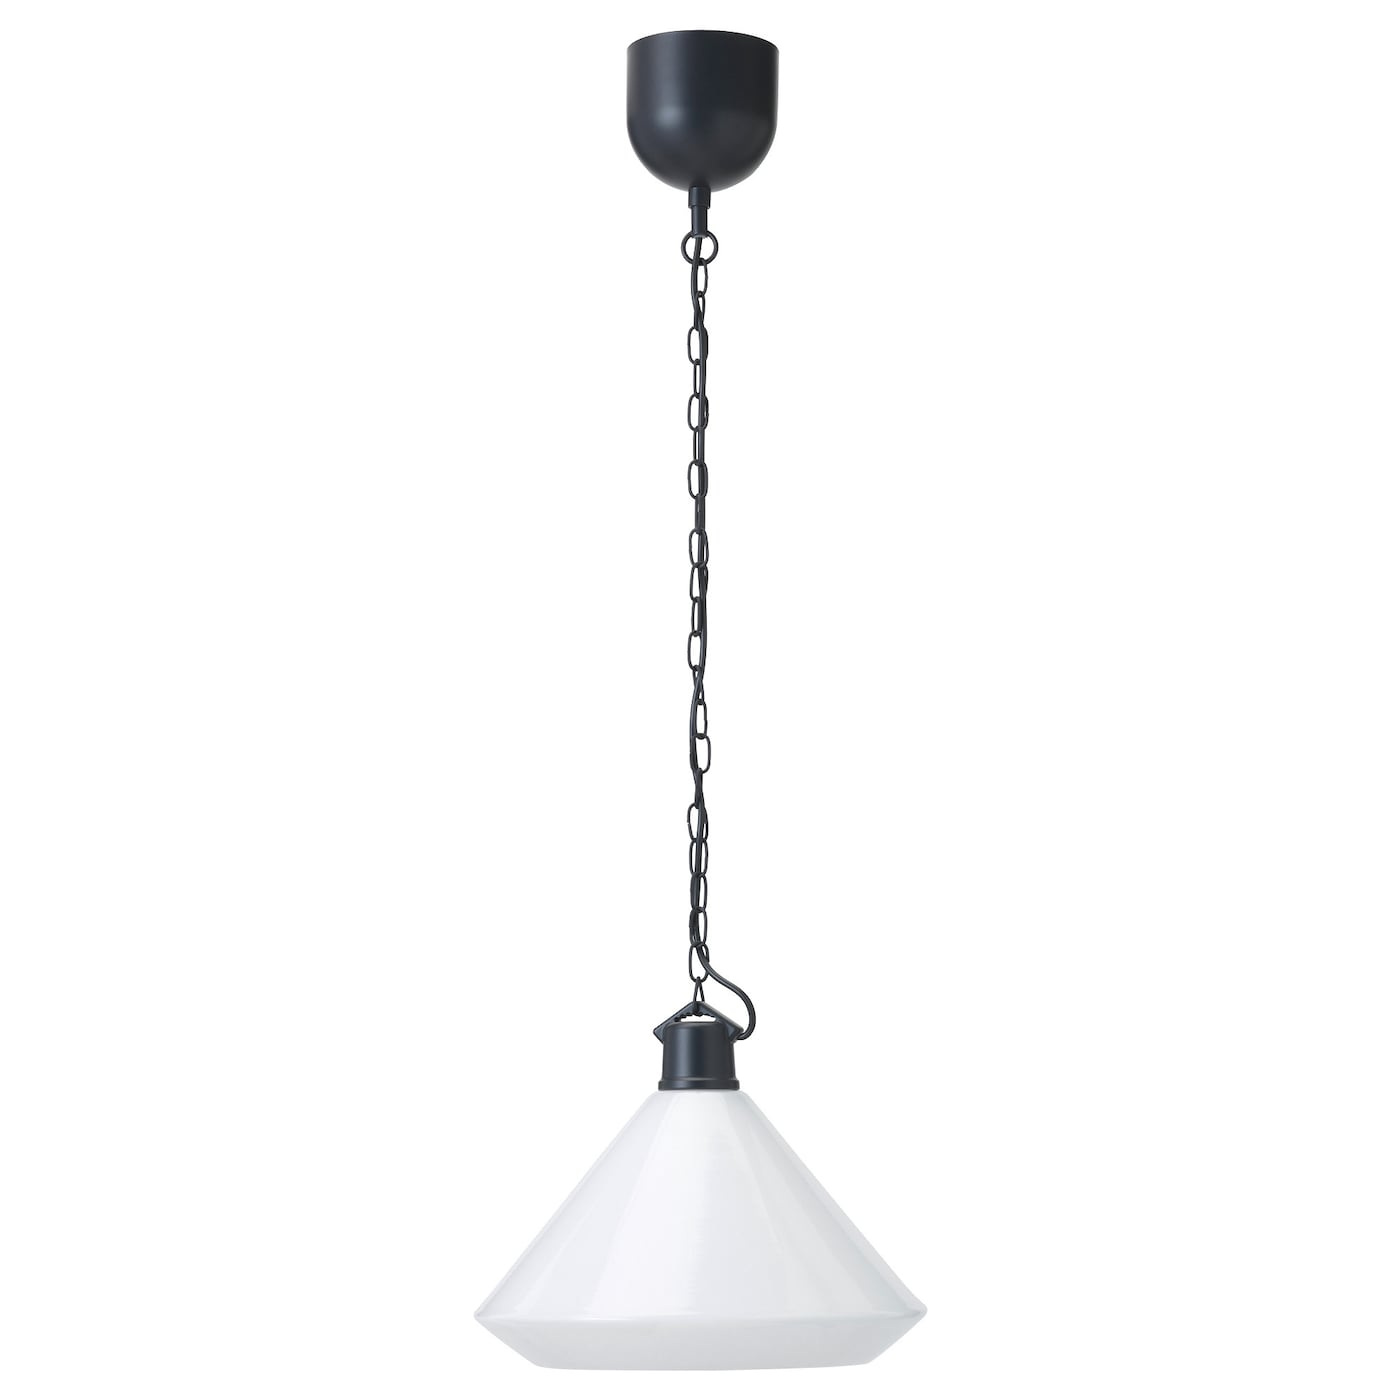 IKEA ÄLVÄNGEN pendant lamp The height is easy to adjust by using the S-hook or cutting the chain.